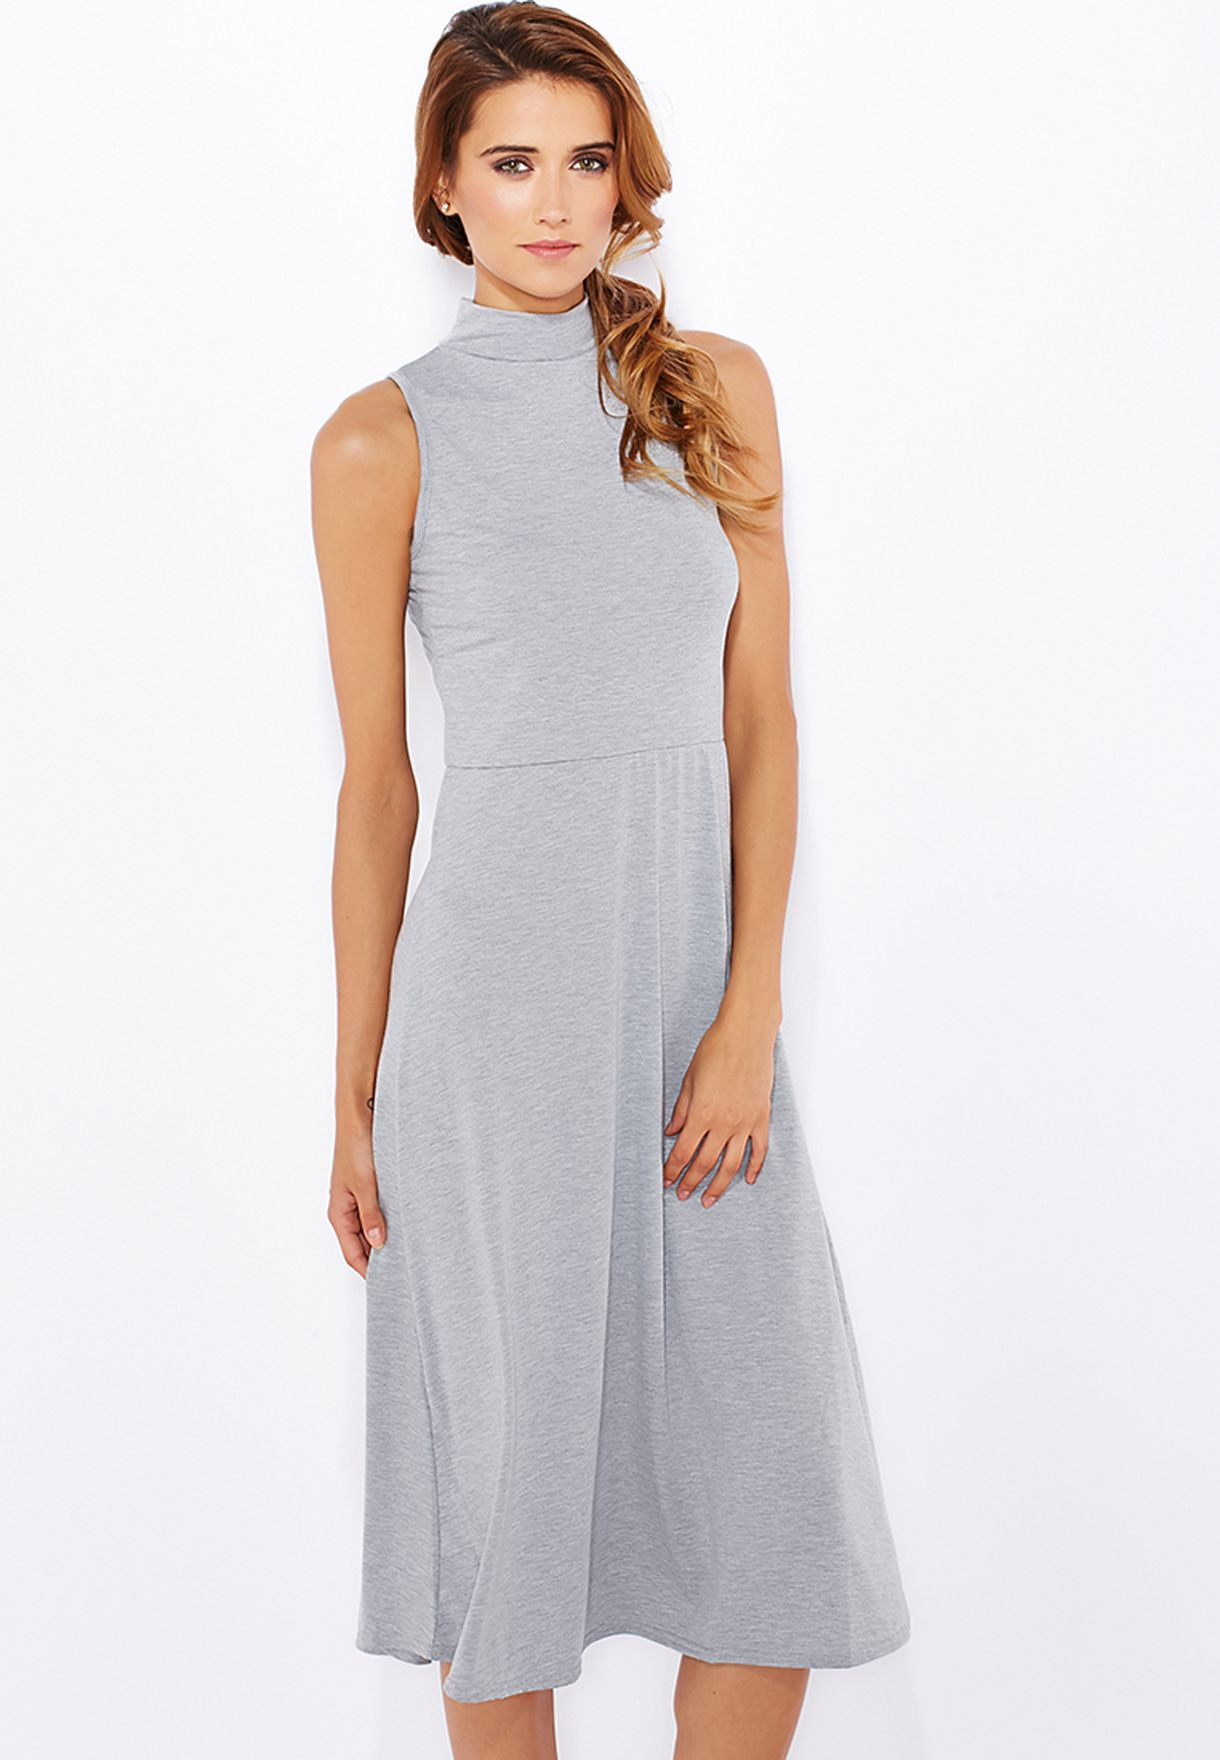 856db4a64fe Shop Boohoo grey High Neck Skater Dress AZZ09524 for Women in ...